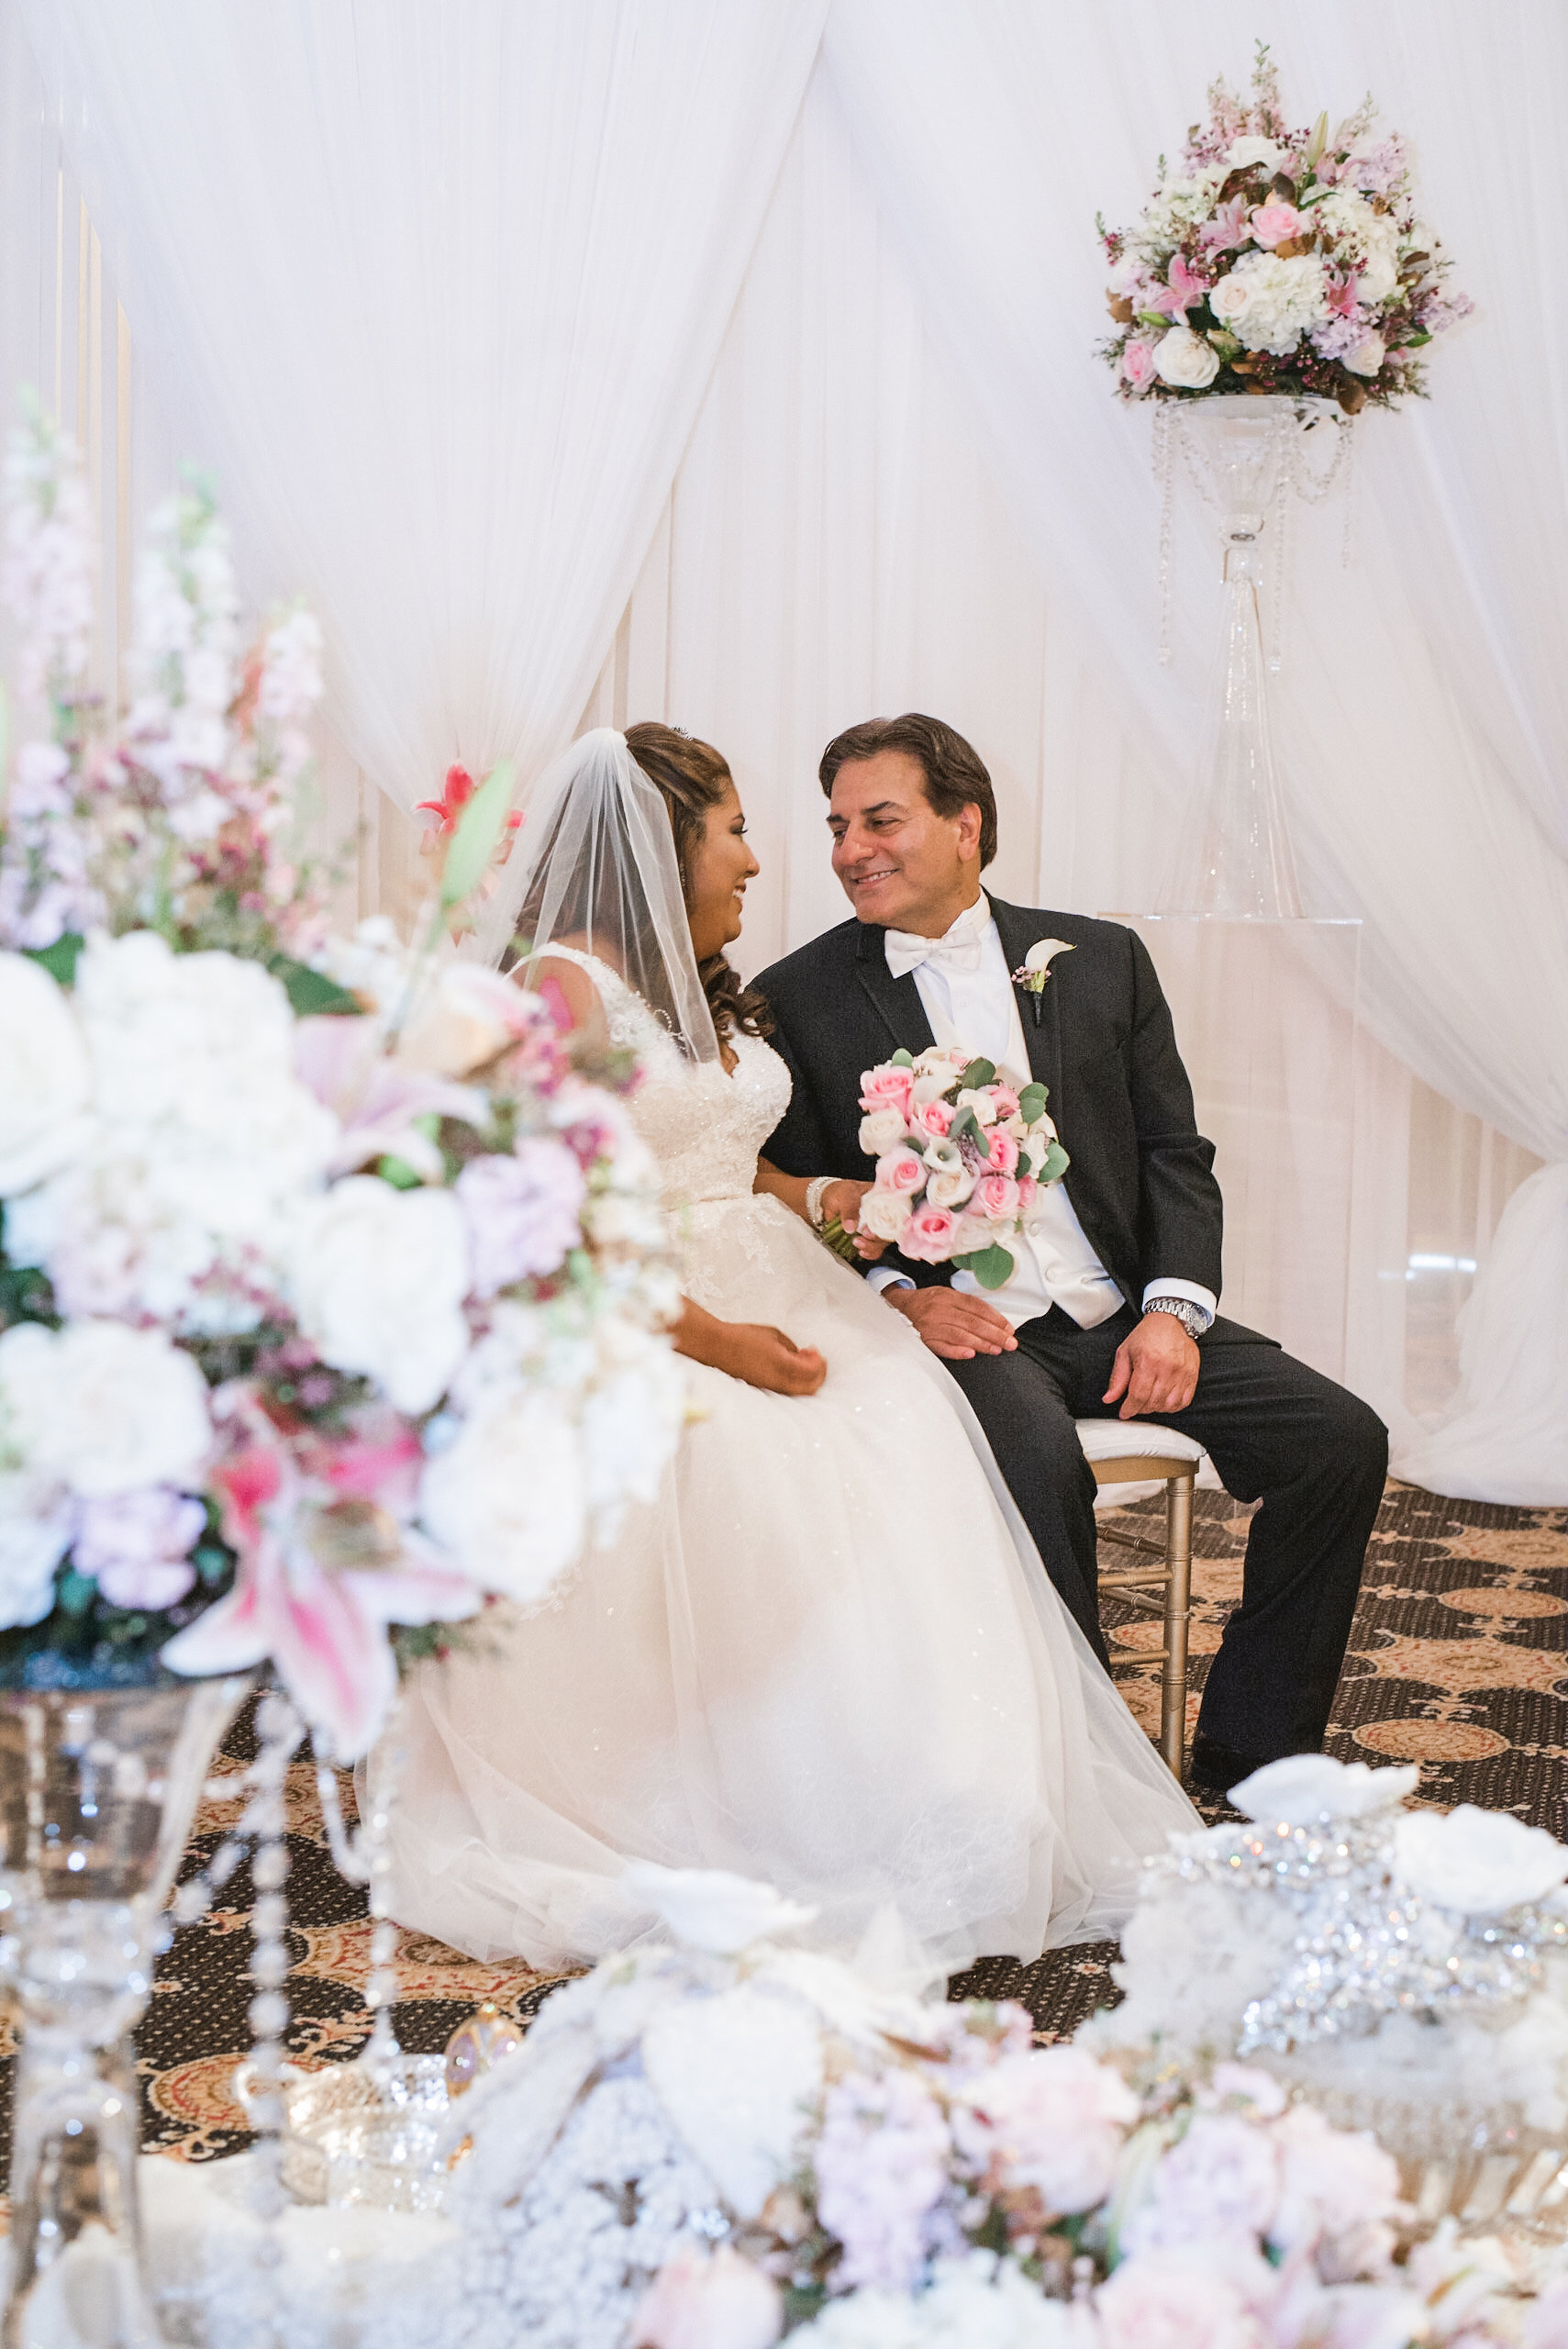 Bride and groom sitting in ceremony space